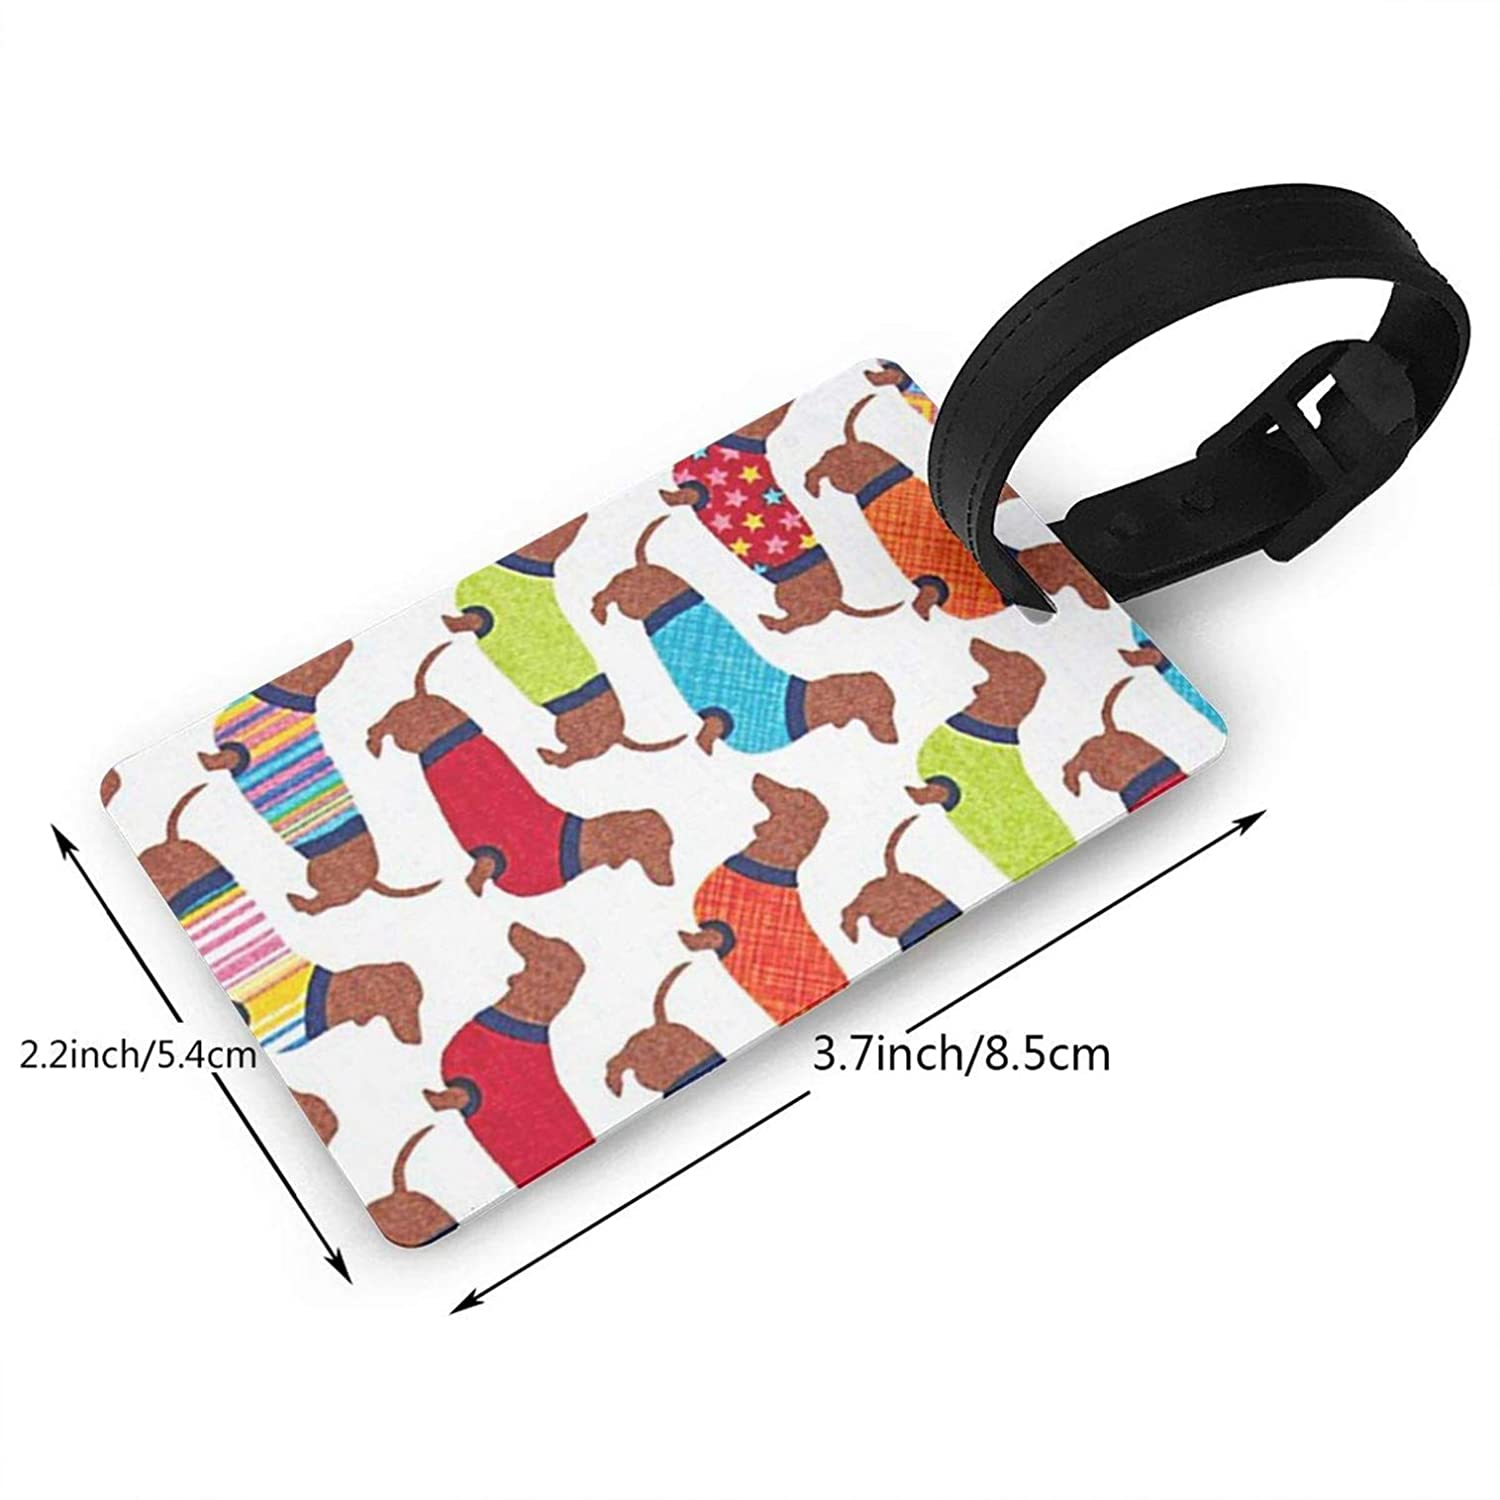 Dachshunds,Travel ID Bag Tag for Suitcase,Printed,Flexible PVC,Travel ID Identification for Bags Consignment Card